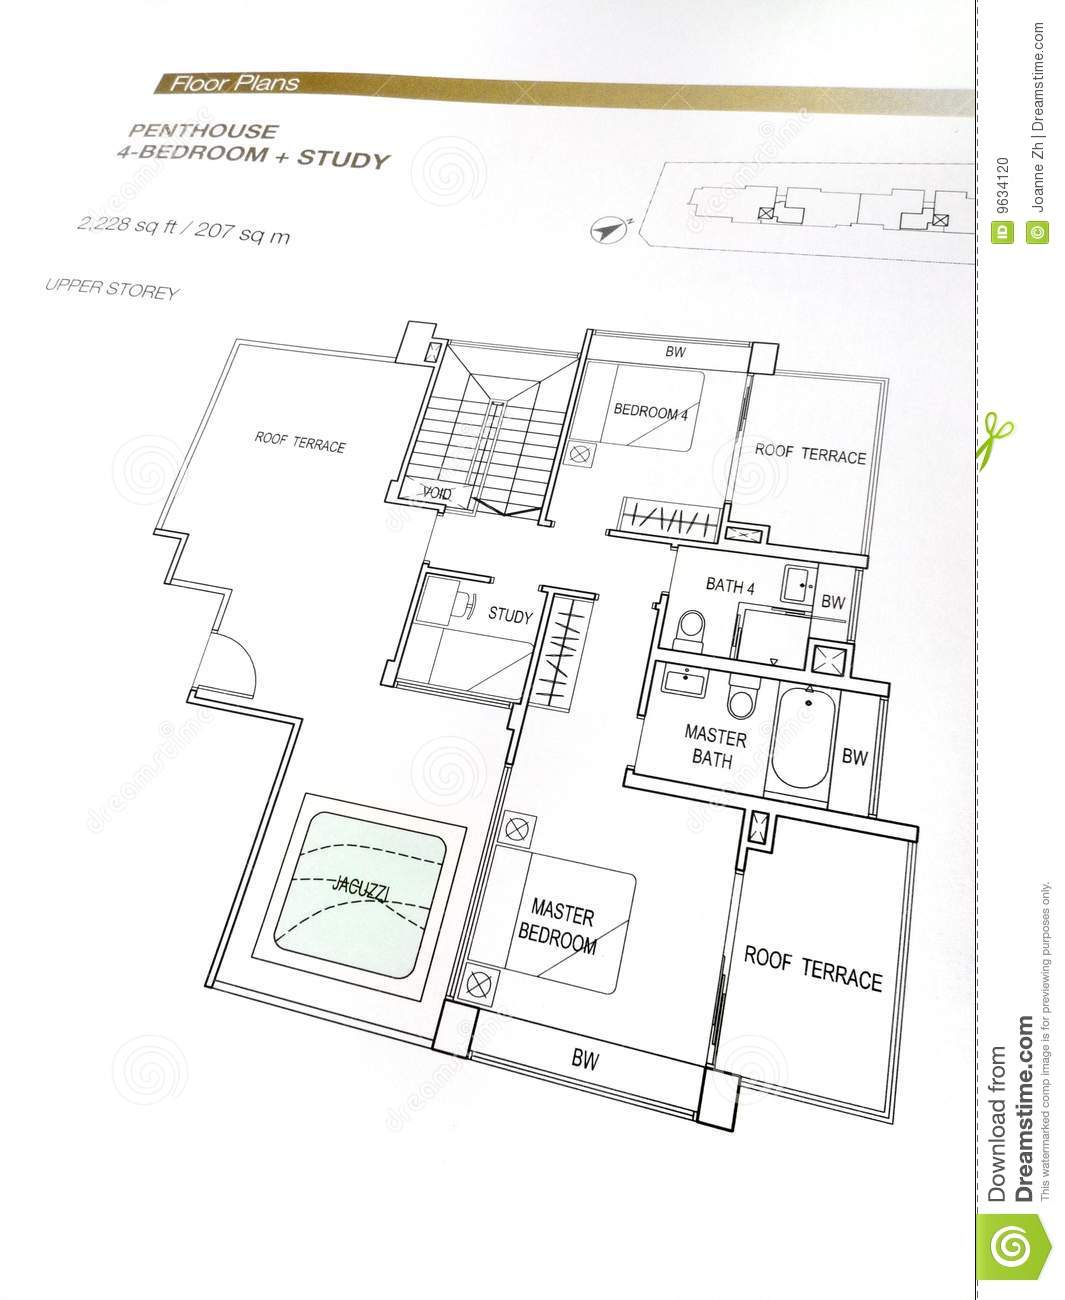 Penthouse floor plans stock photo image of building for Stock floor plans